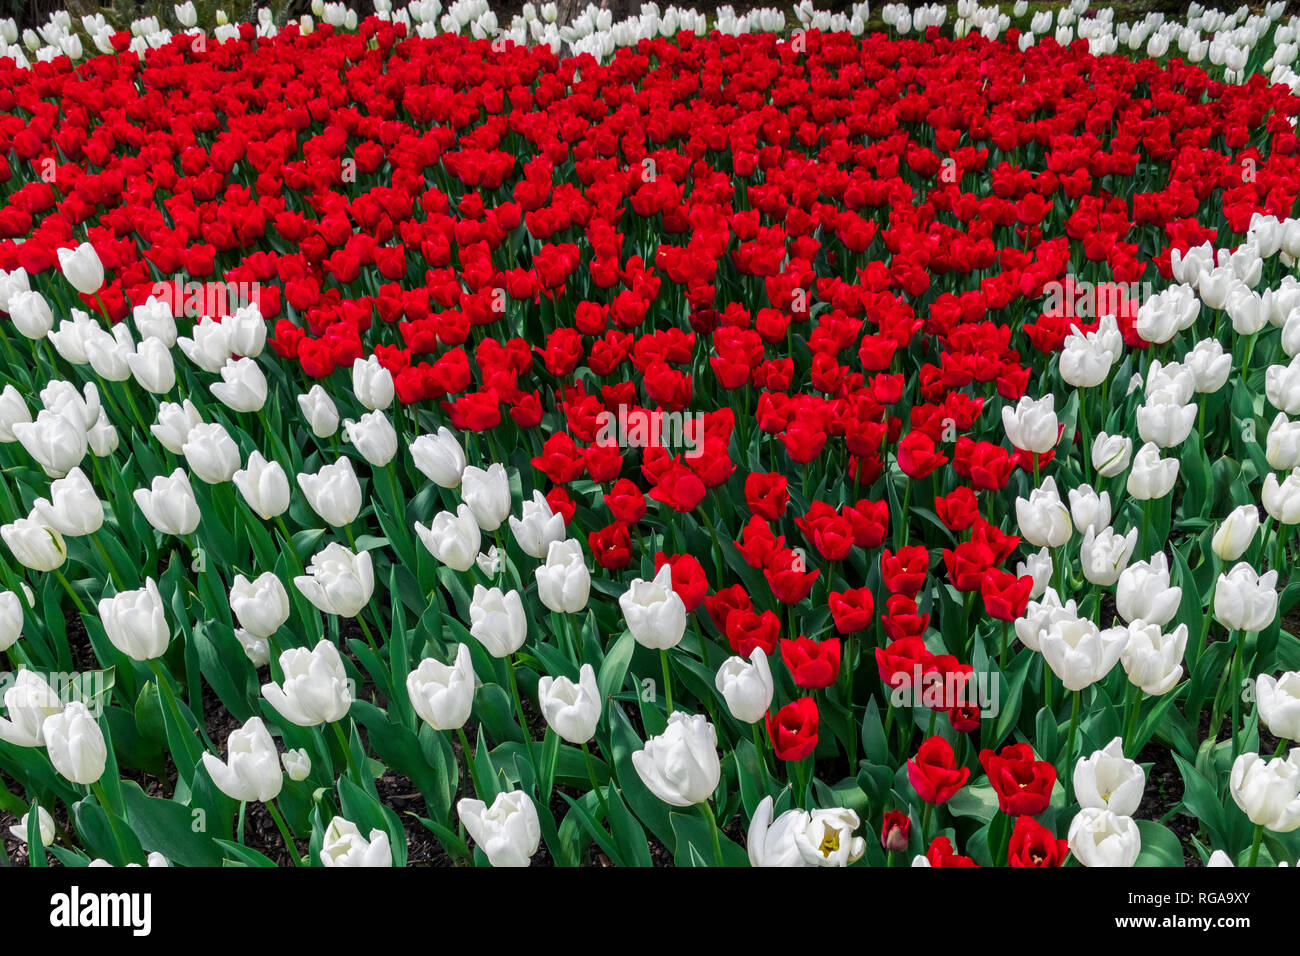 USA, Washington State, Skagit Valley, tulip field, white and red tulips - Stock Image